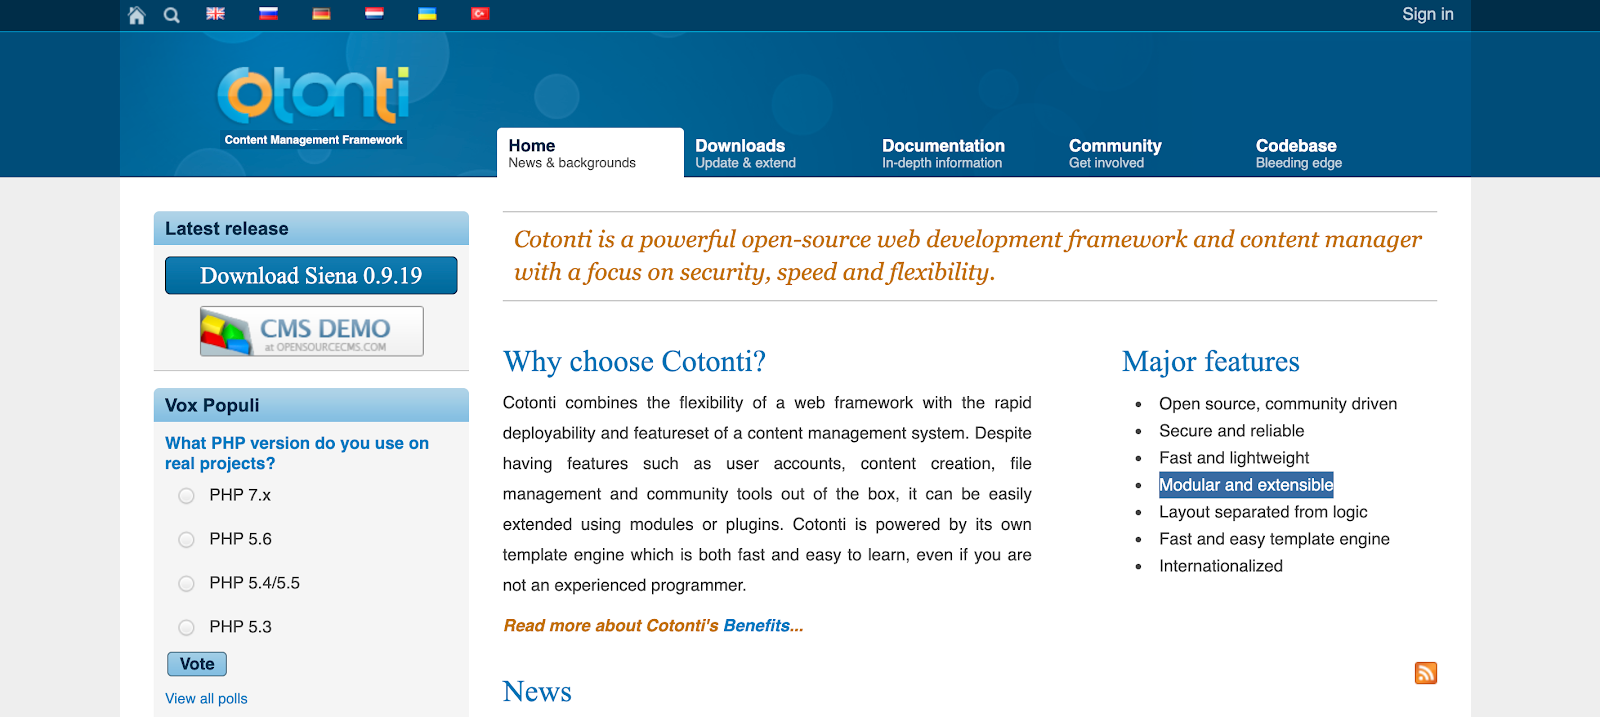 If you're looking for a flexible and free-to-use CMS, check out Contonti